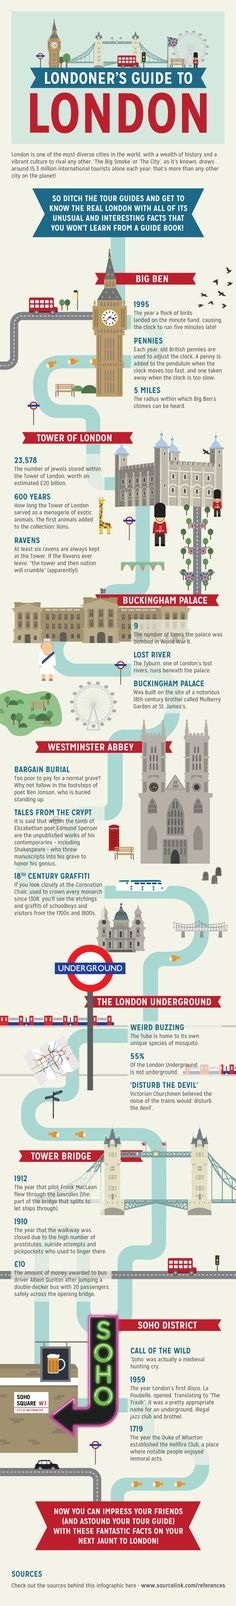 Londoner's Guide To London